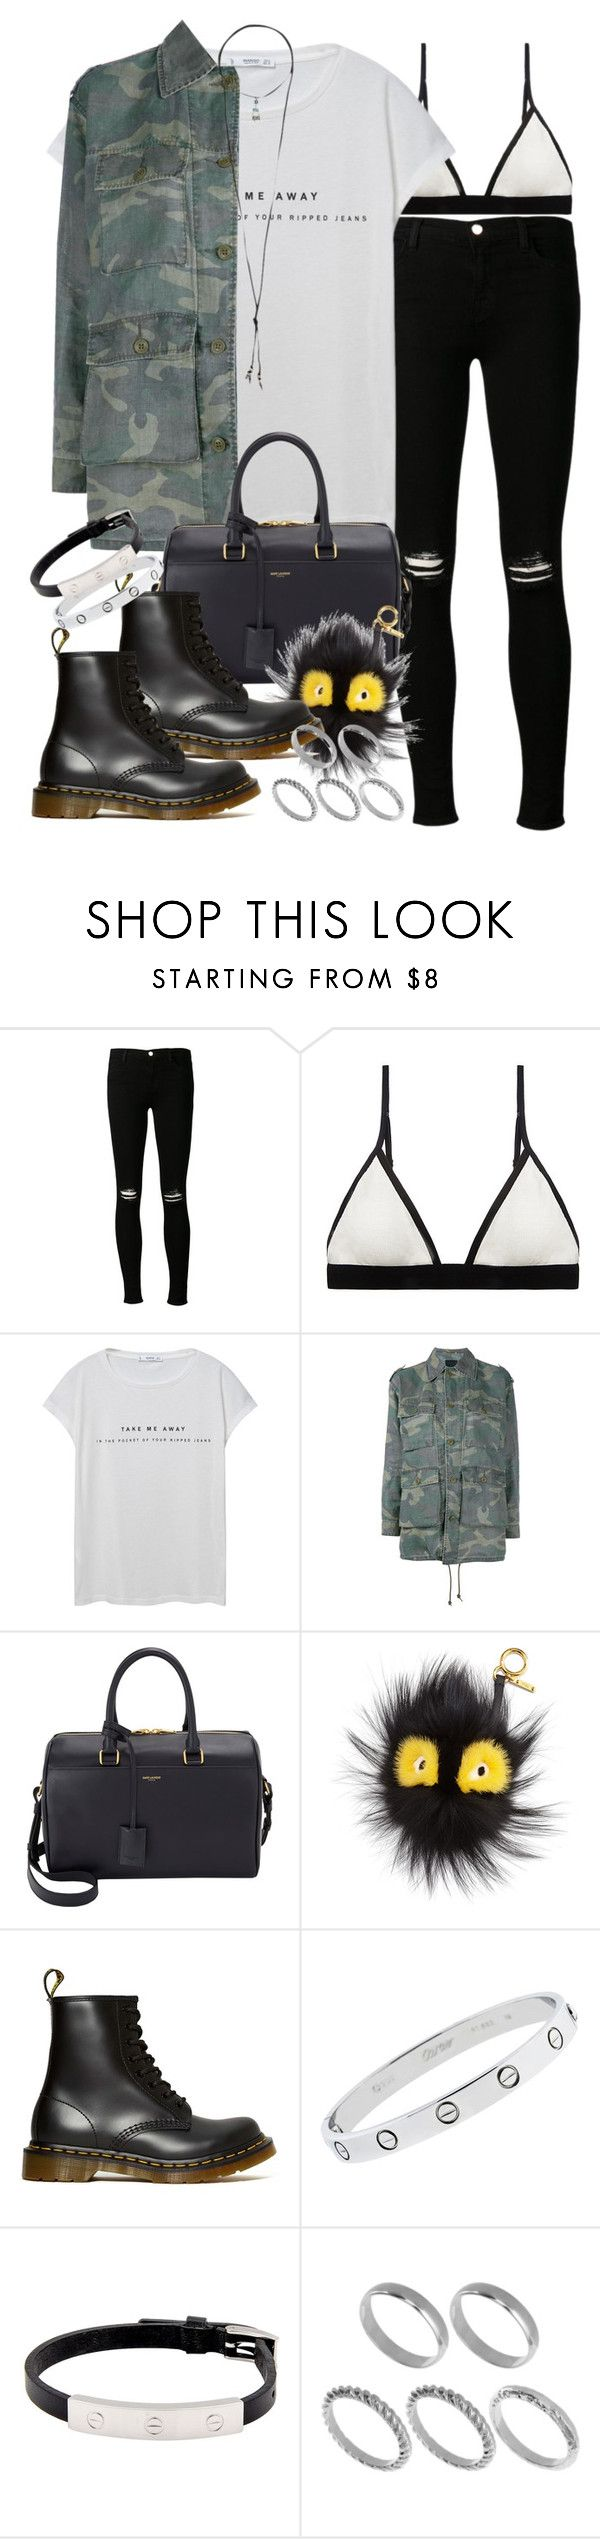 """""""Sin título #3971"""" by hellomissapple ❤ liked on Polyvore featuring J Brand, Sloane & Tate, MANGO, Yves Saint Laurent, Fendi, Dr. Martens, Cartier, ASOS and Natalie B"""